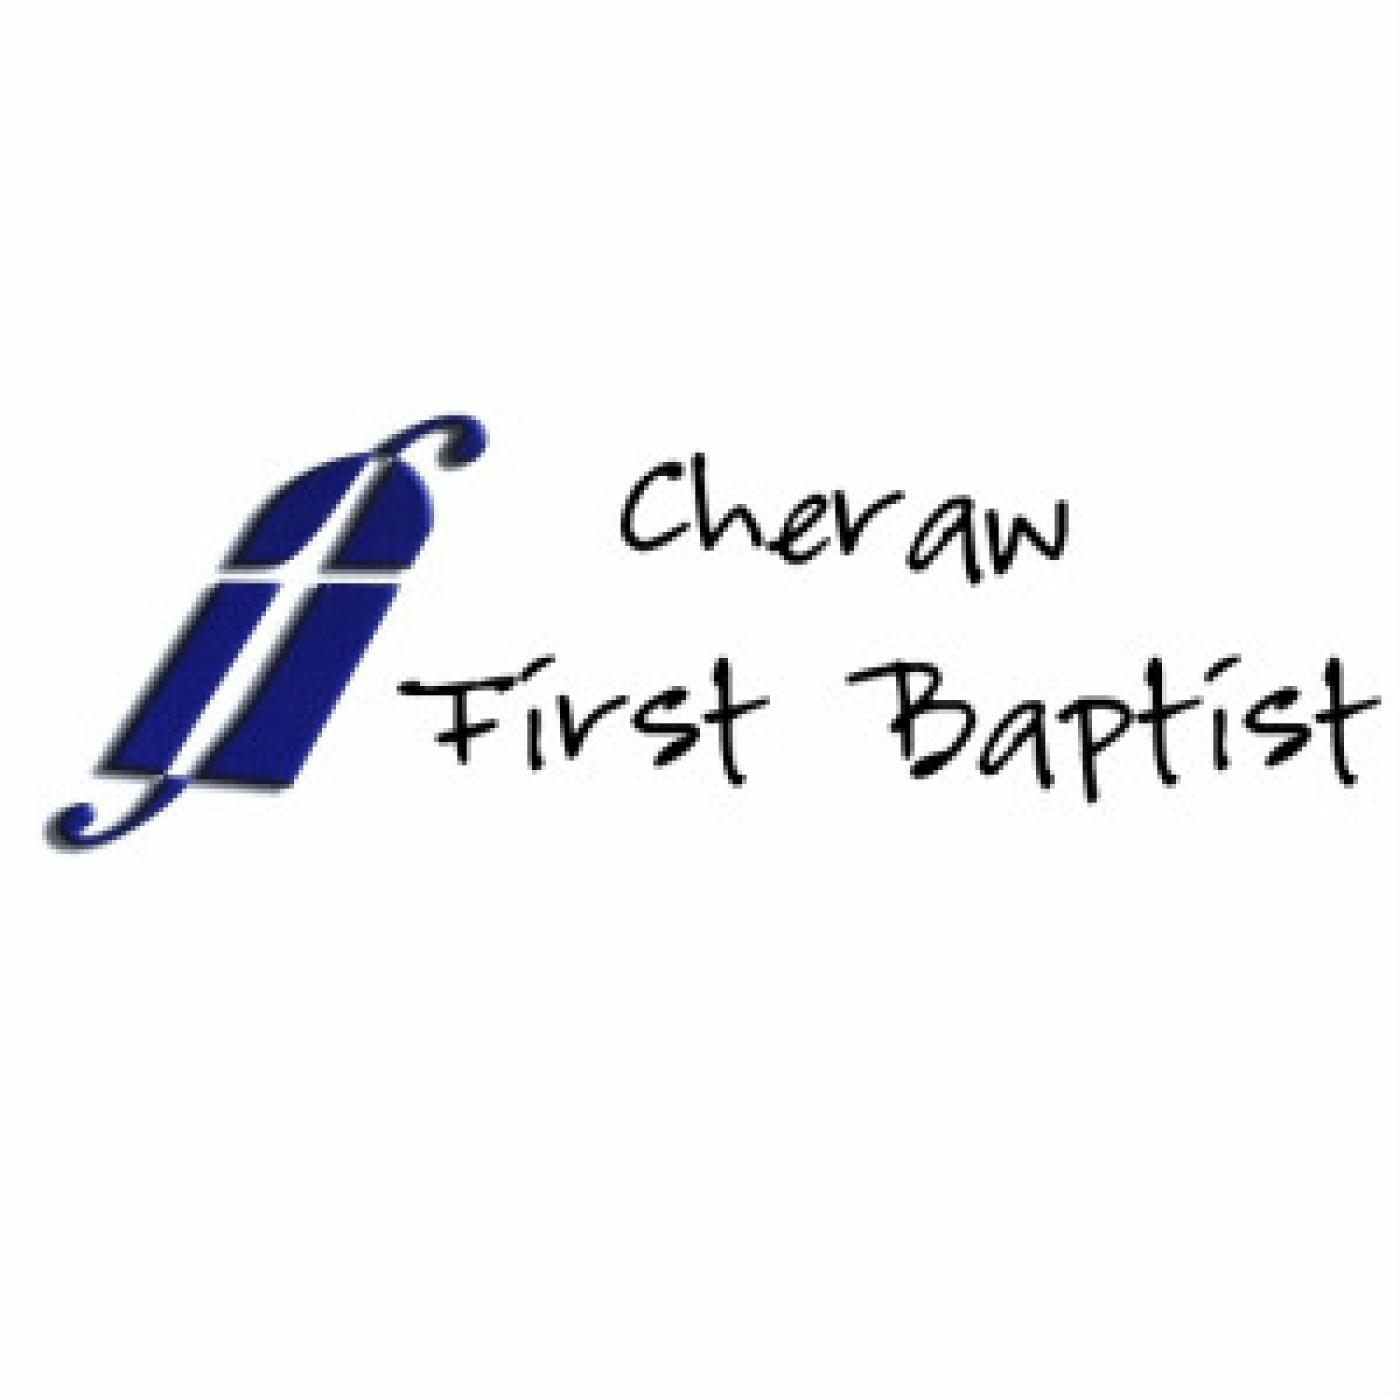 Cheraw First Baptist Chruch